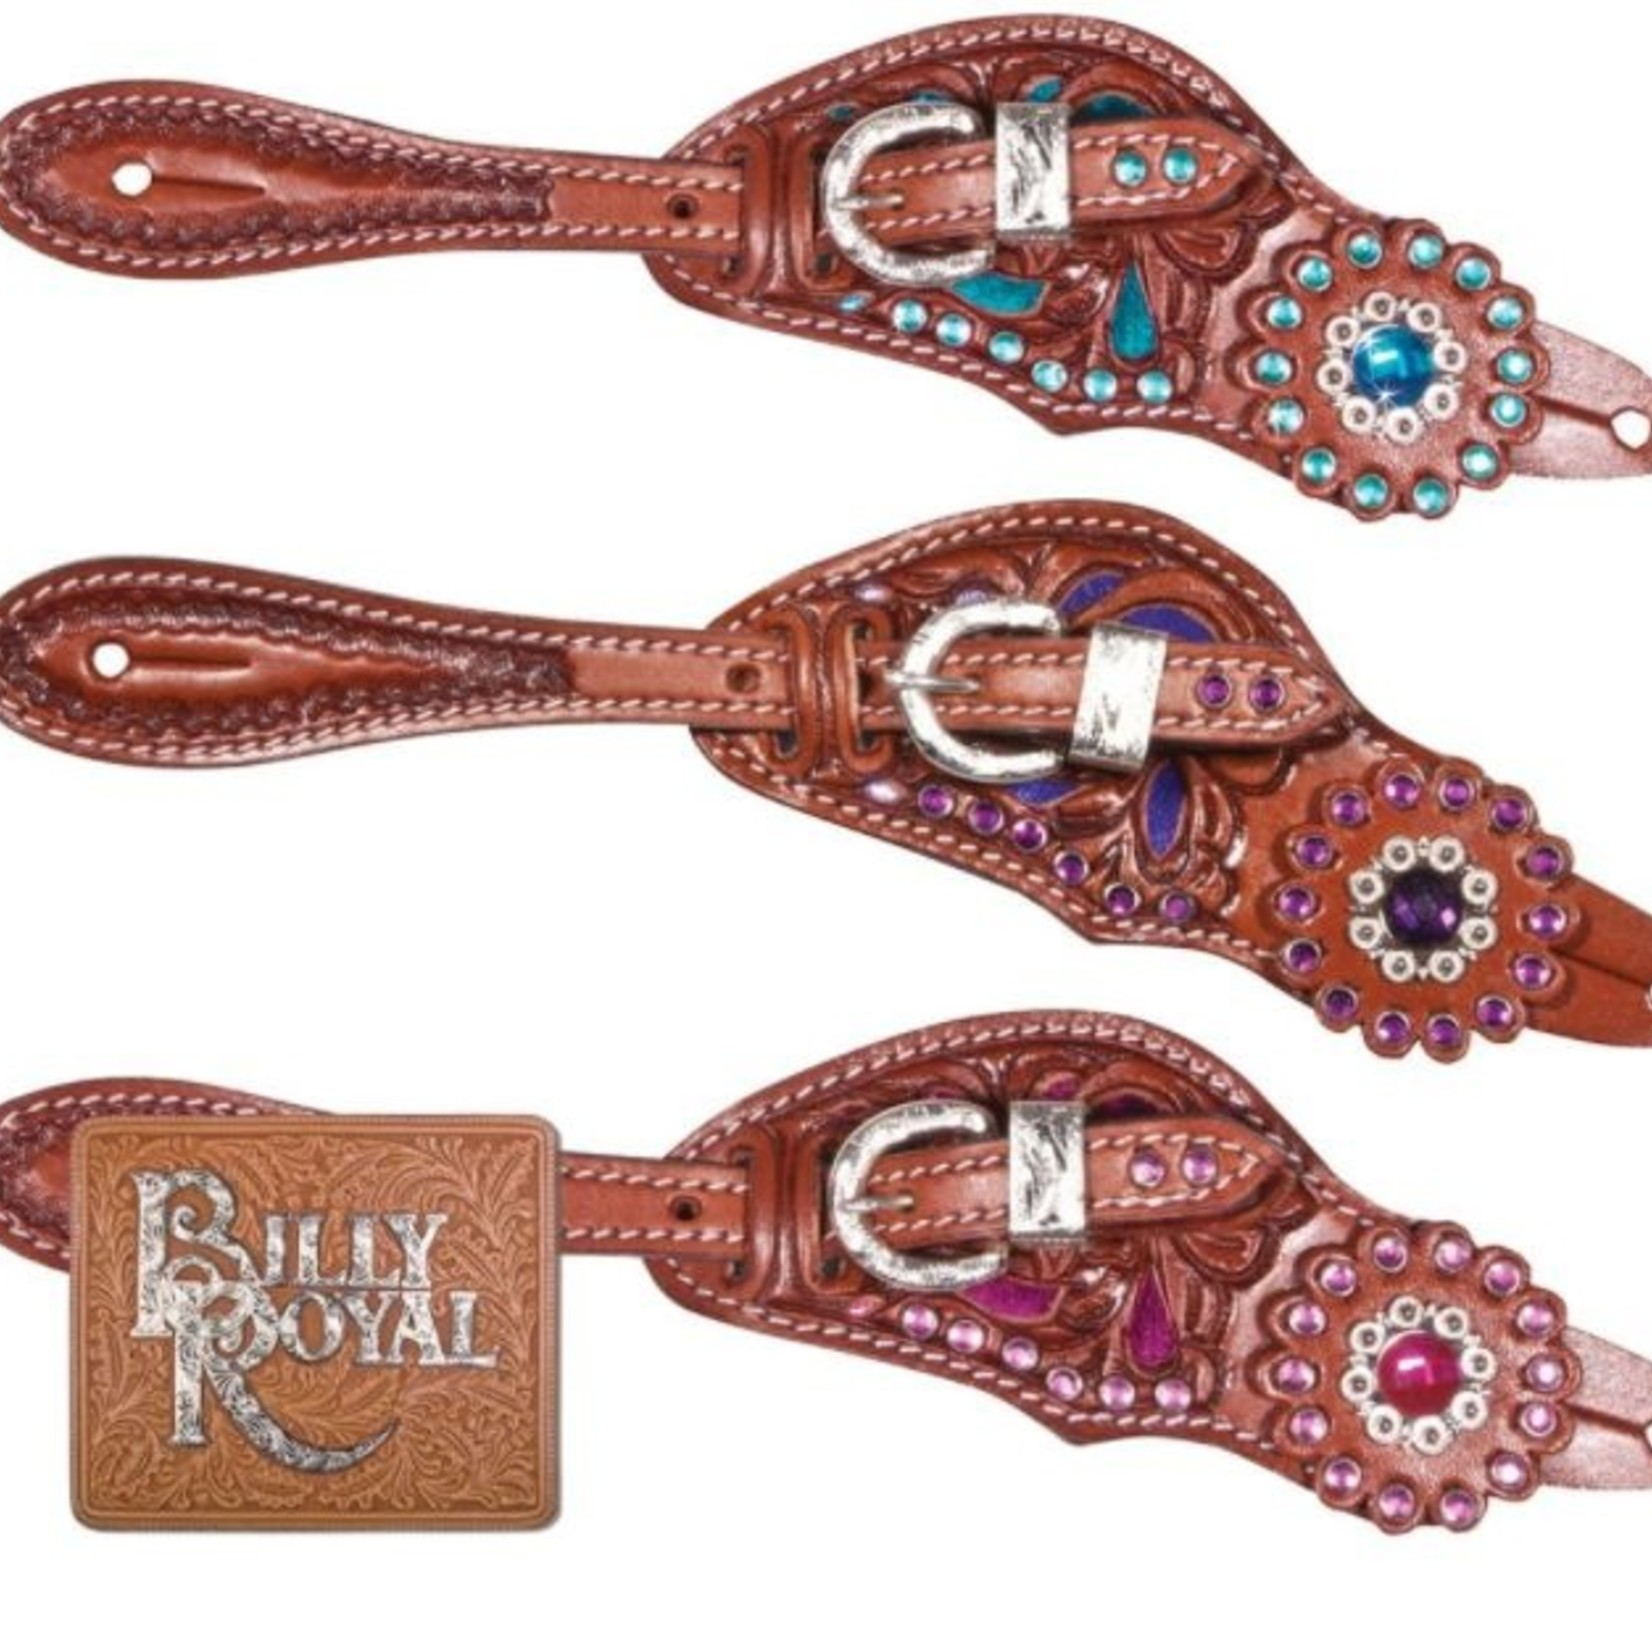 Billy Royal Crystal Ladies Spur Straps - Turquoise